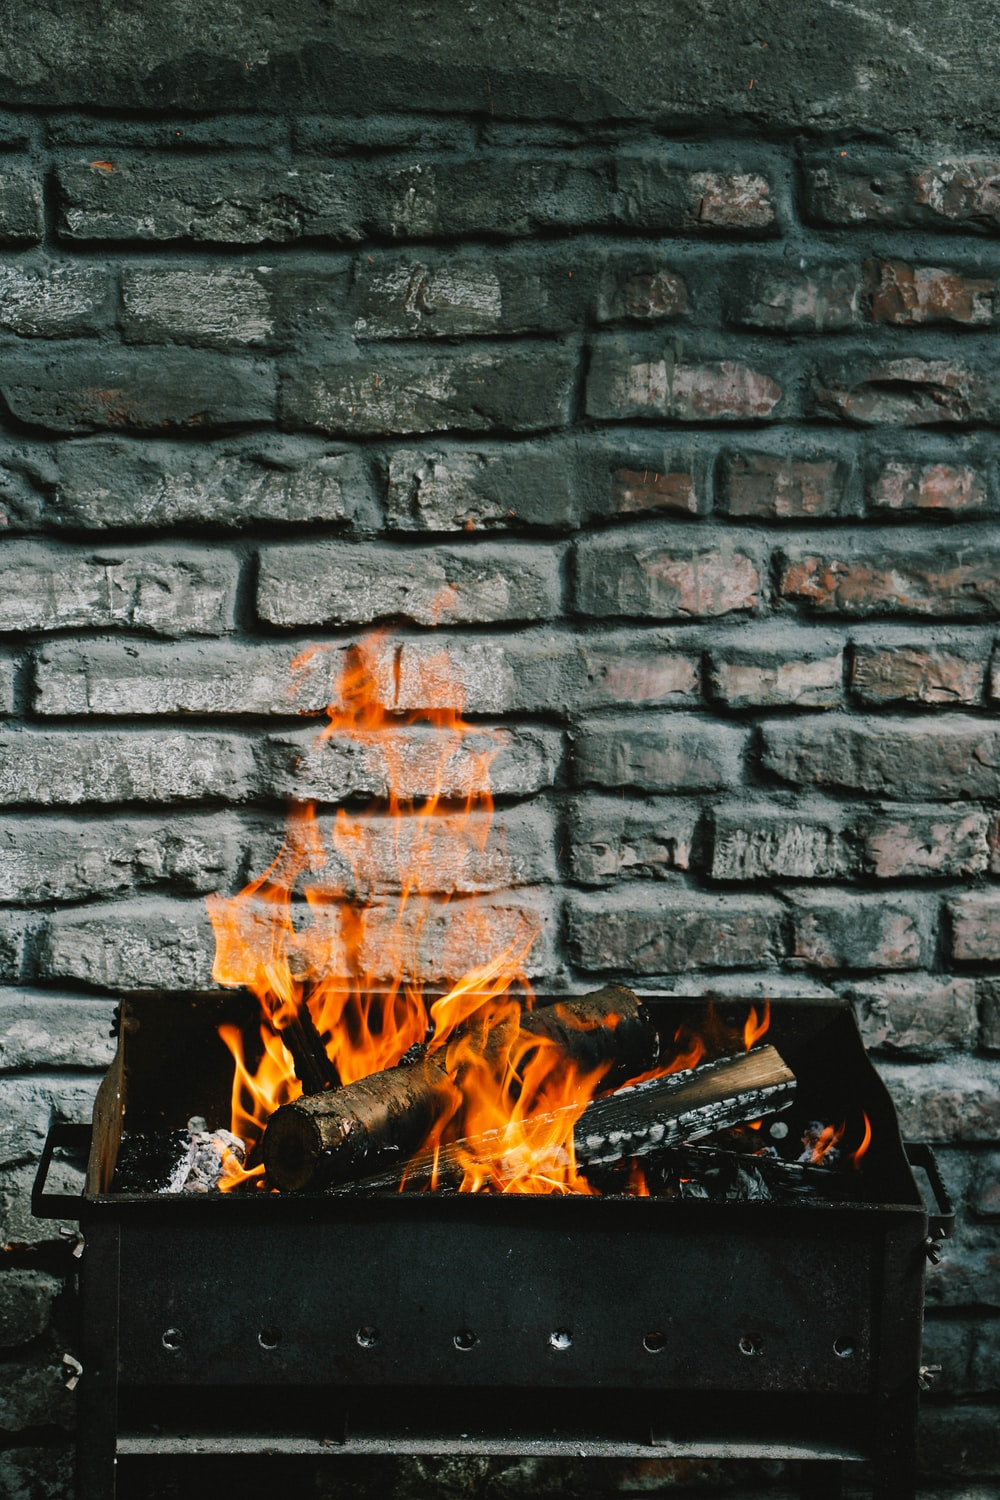 burning logs on charcoal grill